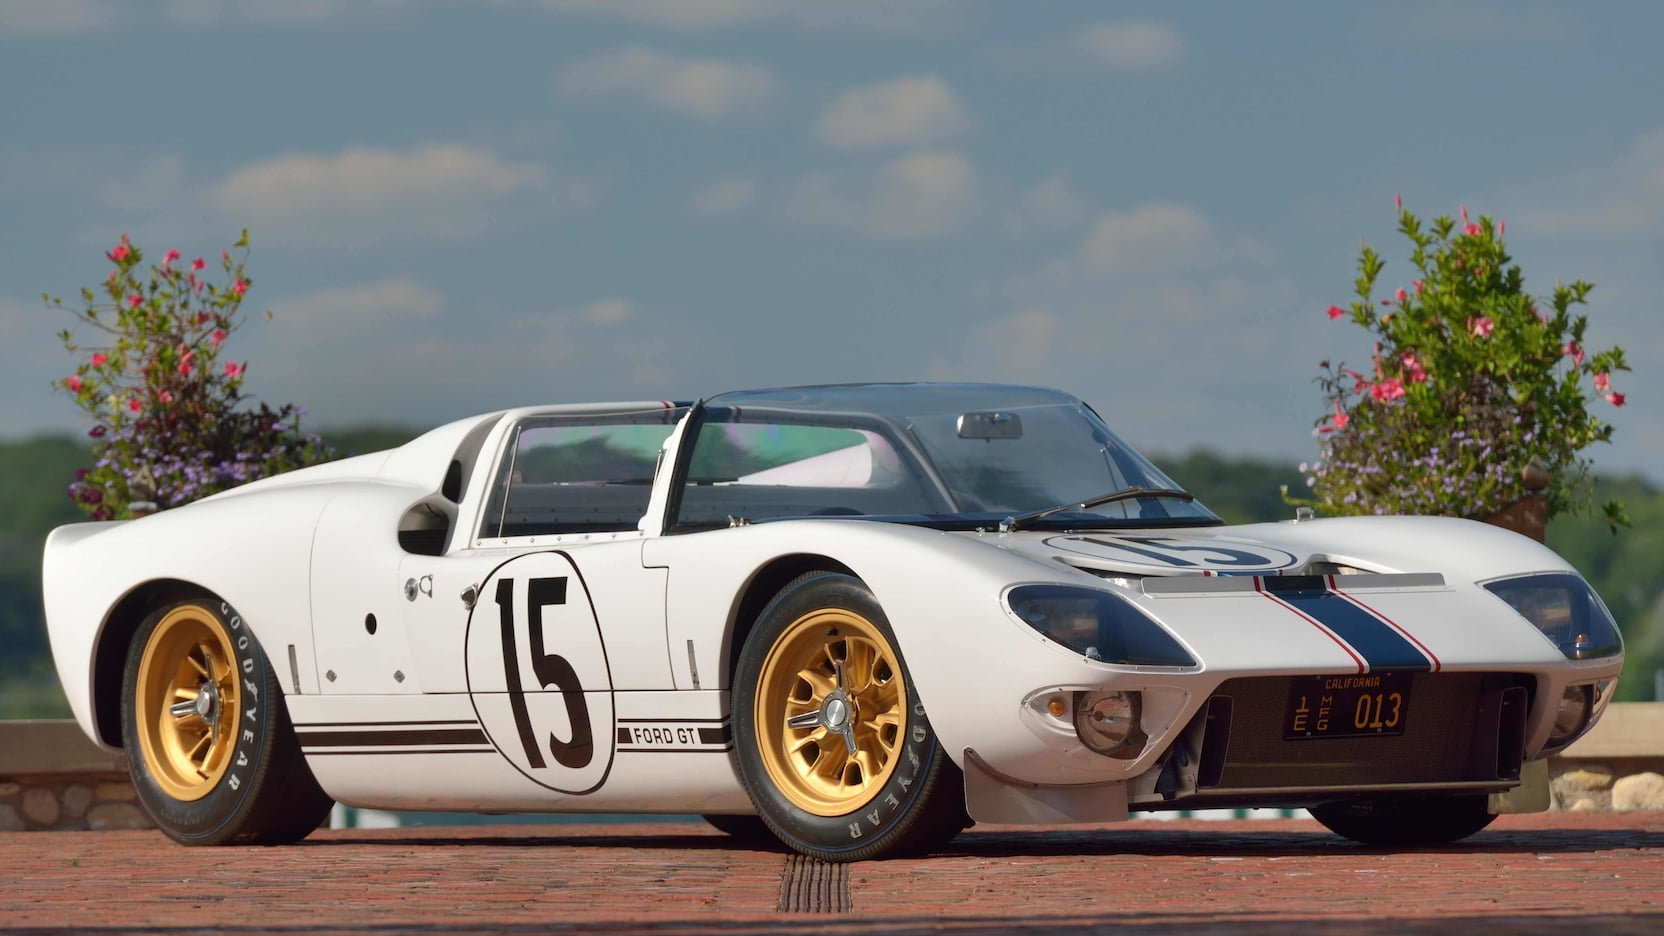 This Le Mans-raced Ford GT Competition protoype roadster could hit $7M thumbnail